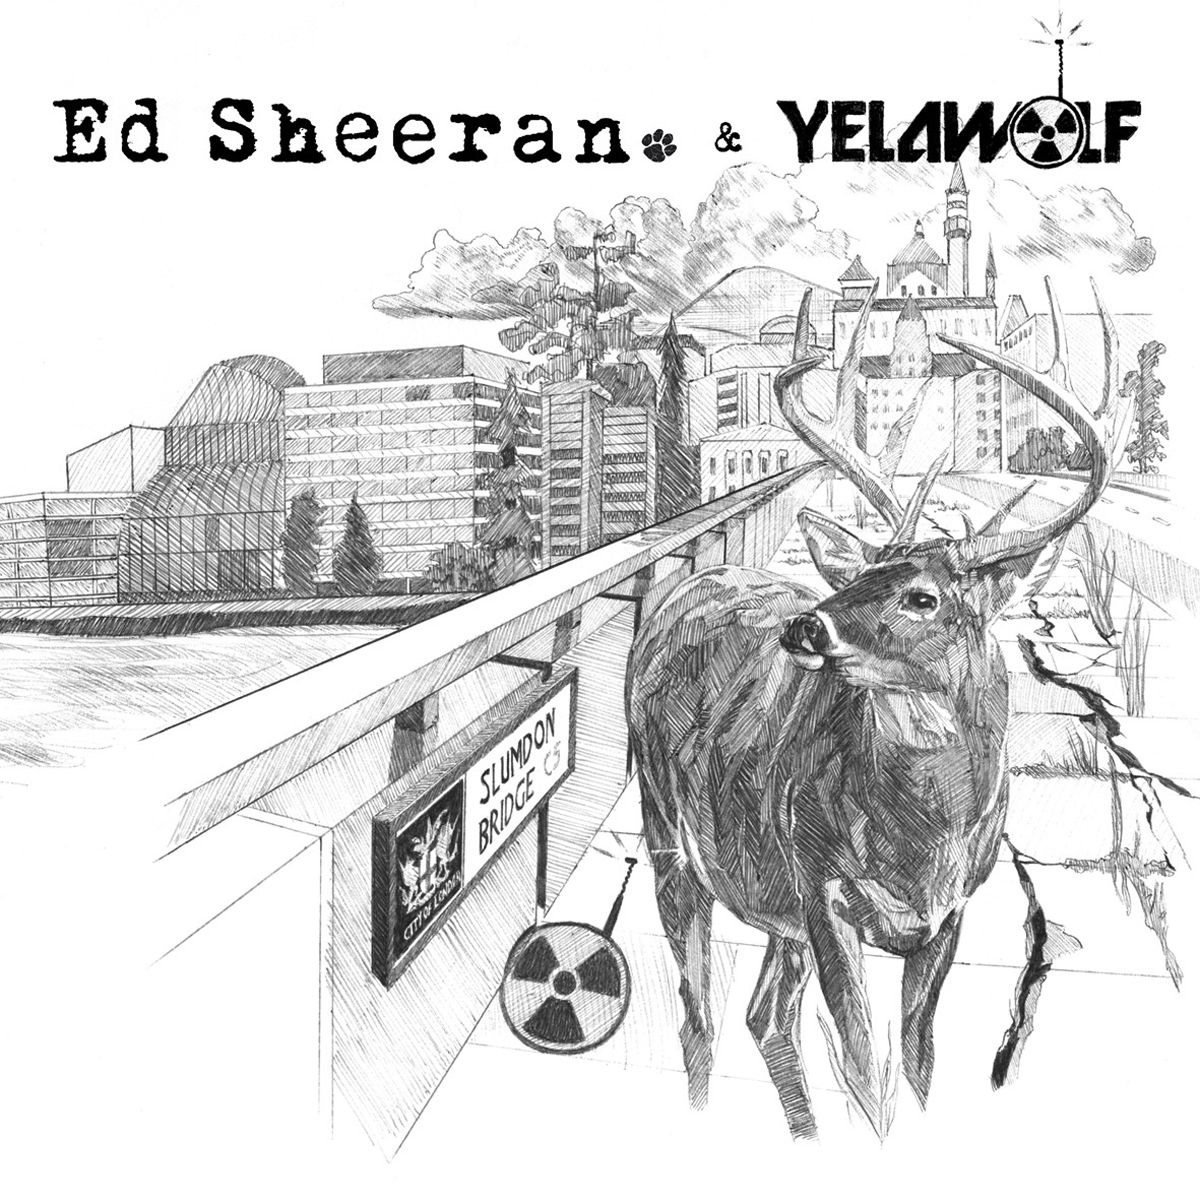 The Slumdon Bridge - EP Ed Sheeran  Yelawolf CD cover